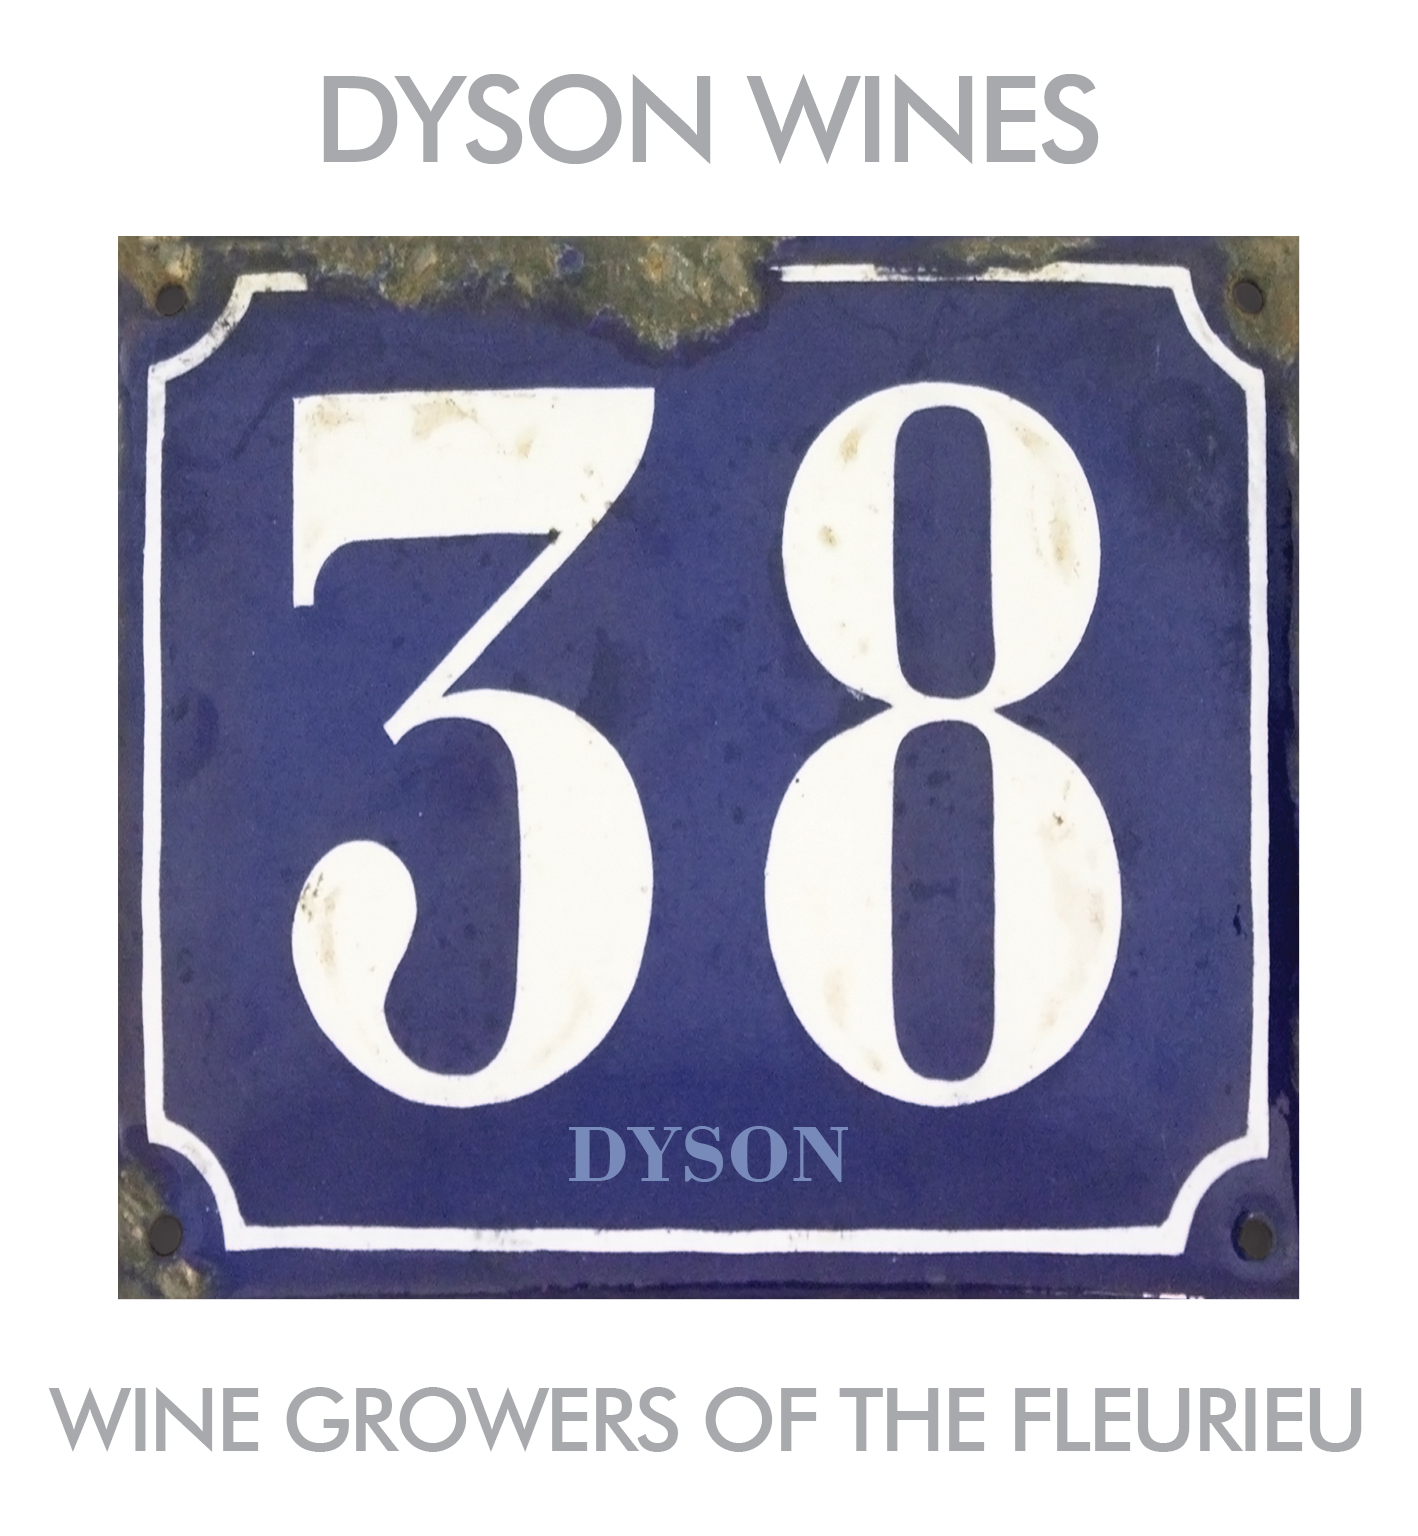 Dyson Wines